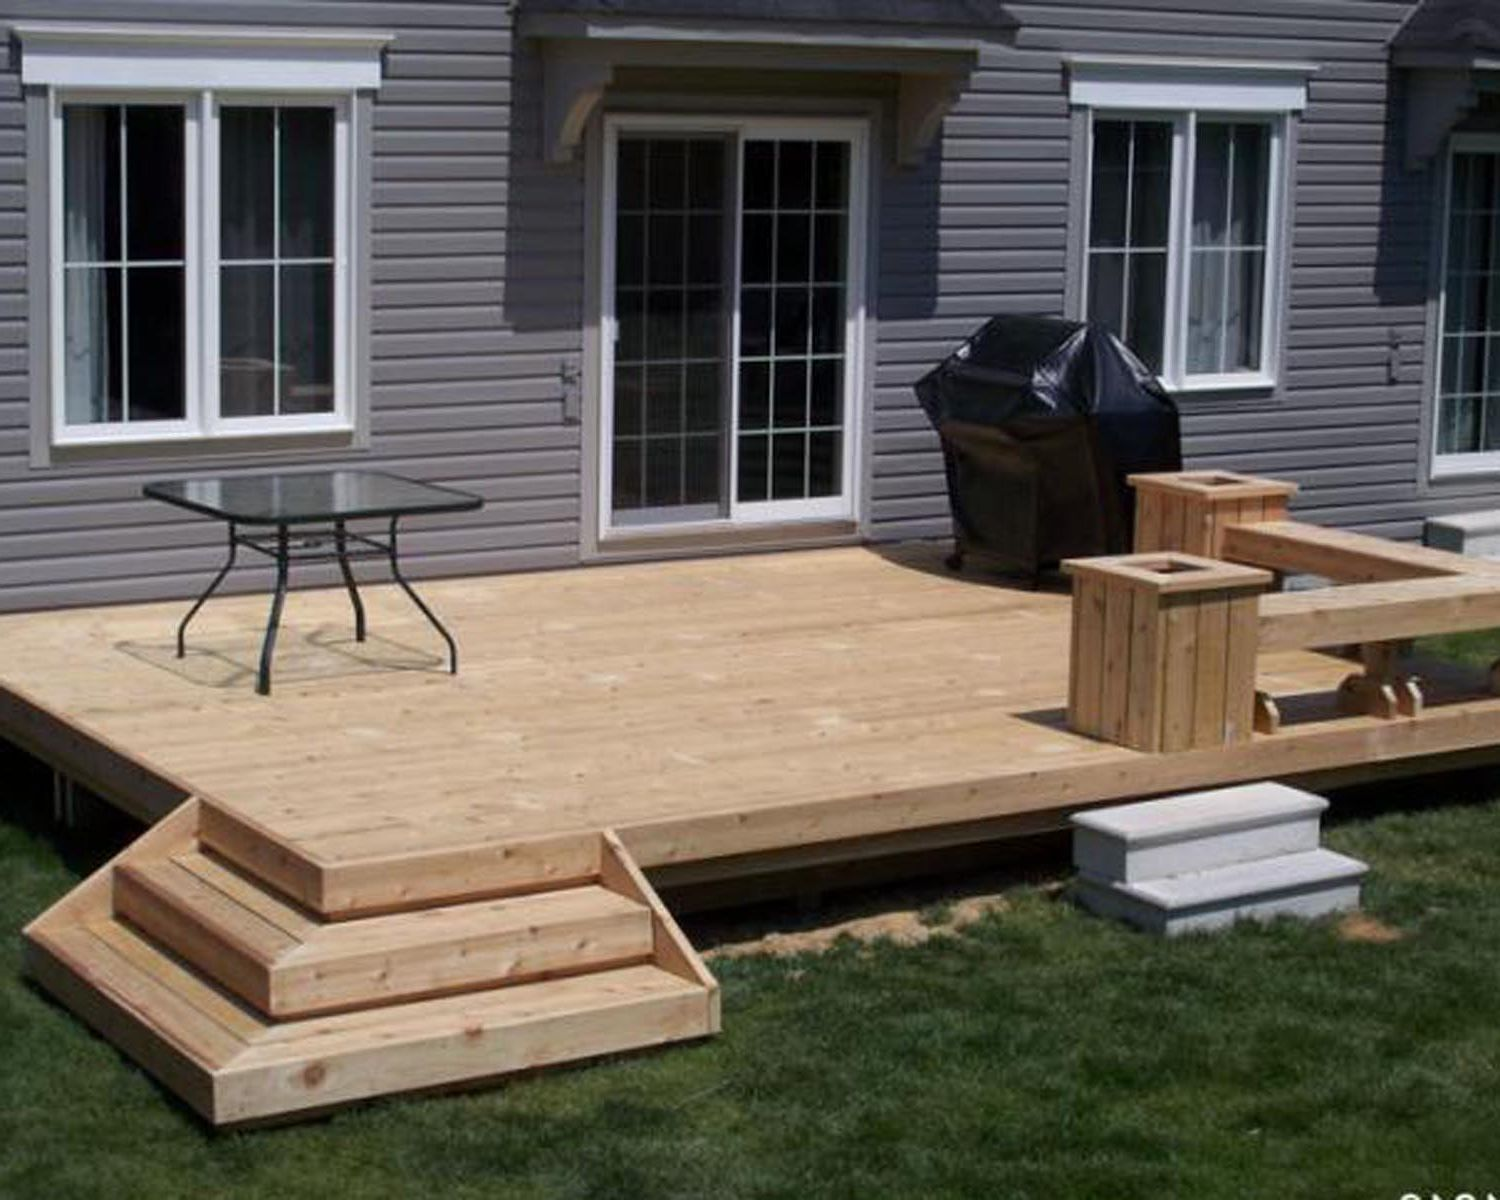 Make most of the space in your yard for Small deck ideas